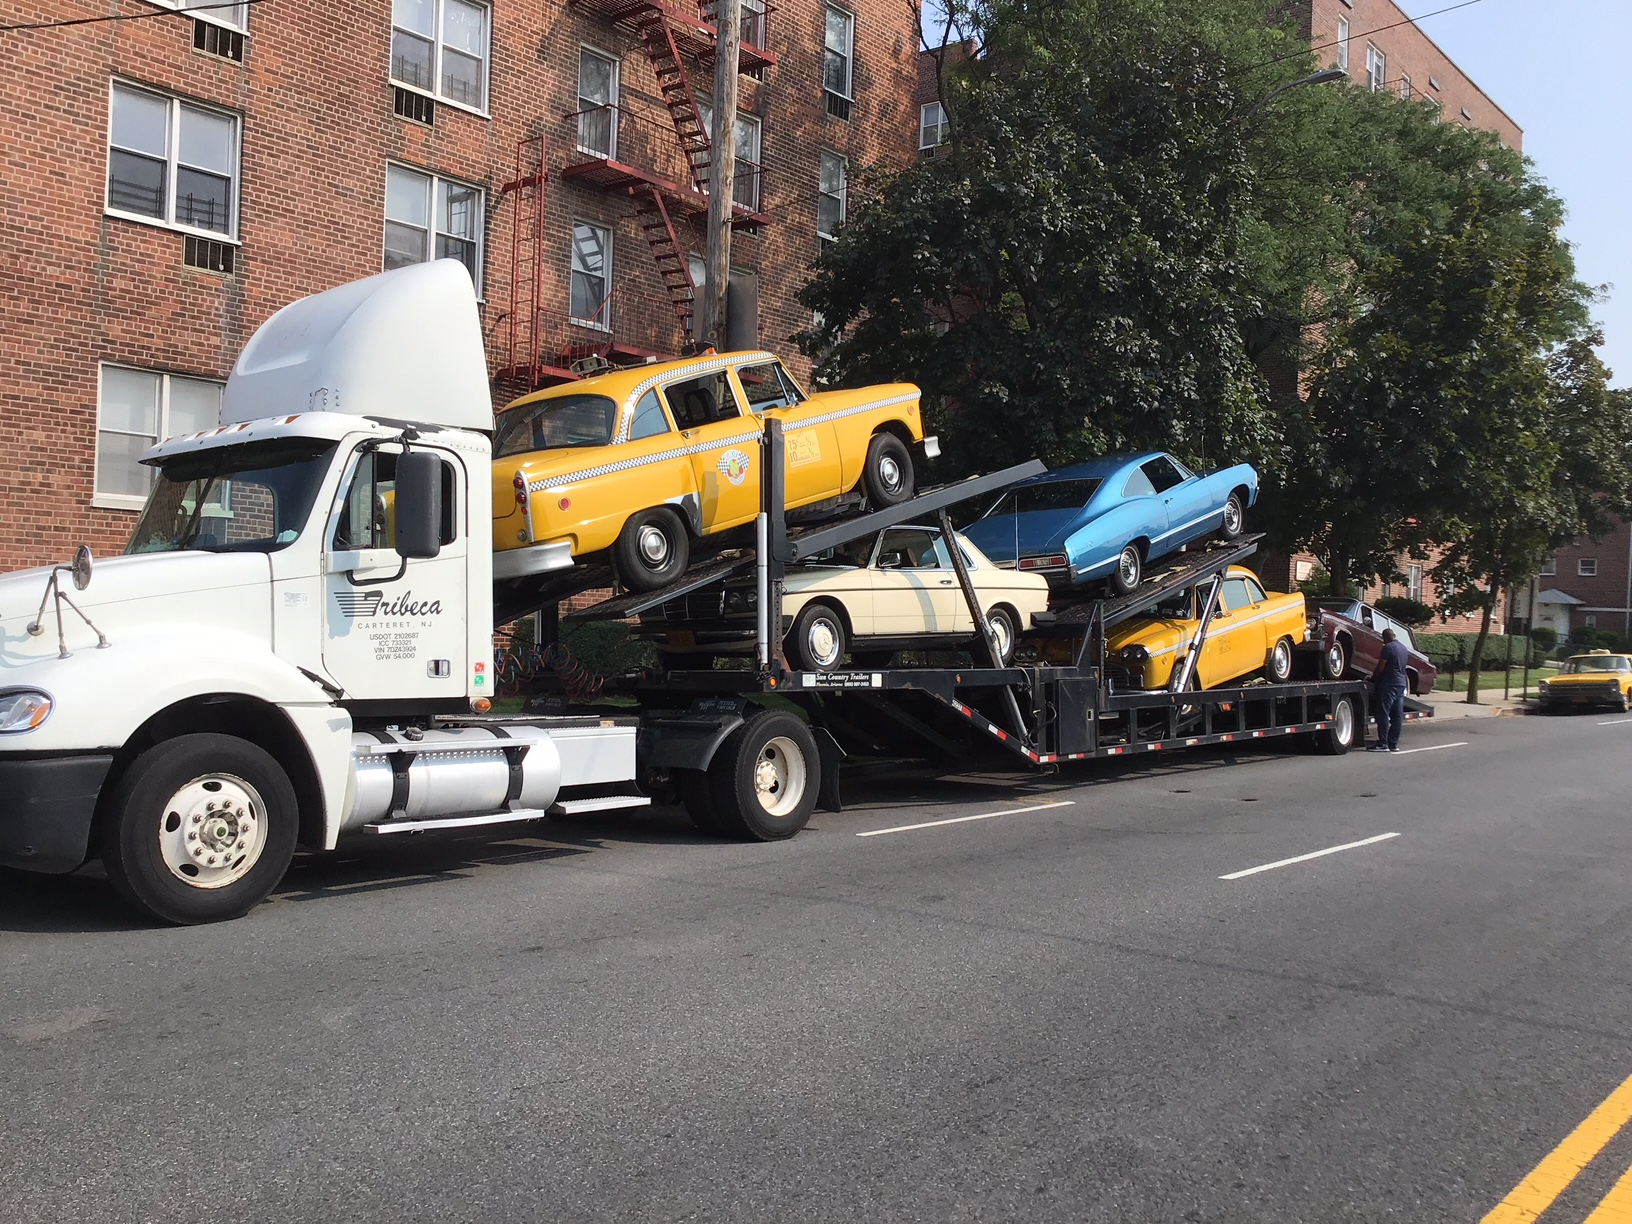 Cars for The Deuce, Season 2 loaded up for delivery to the set.